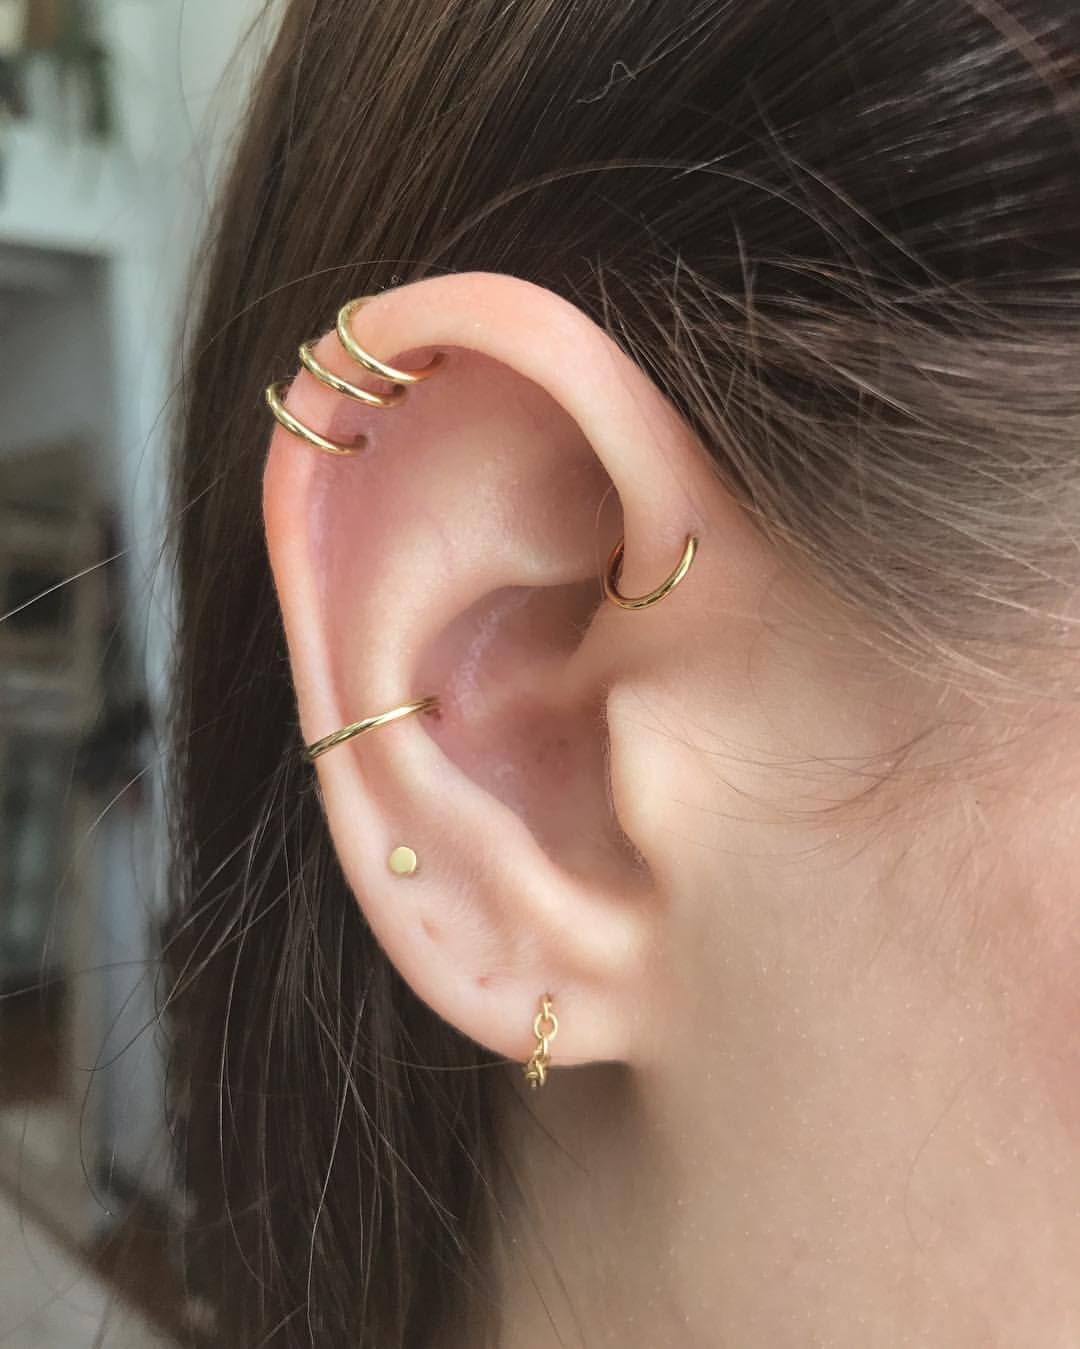 Custom Yg Chain And Ear Curation For At Elizabethpipko Done At At 108